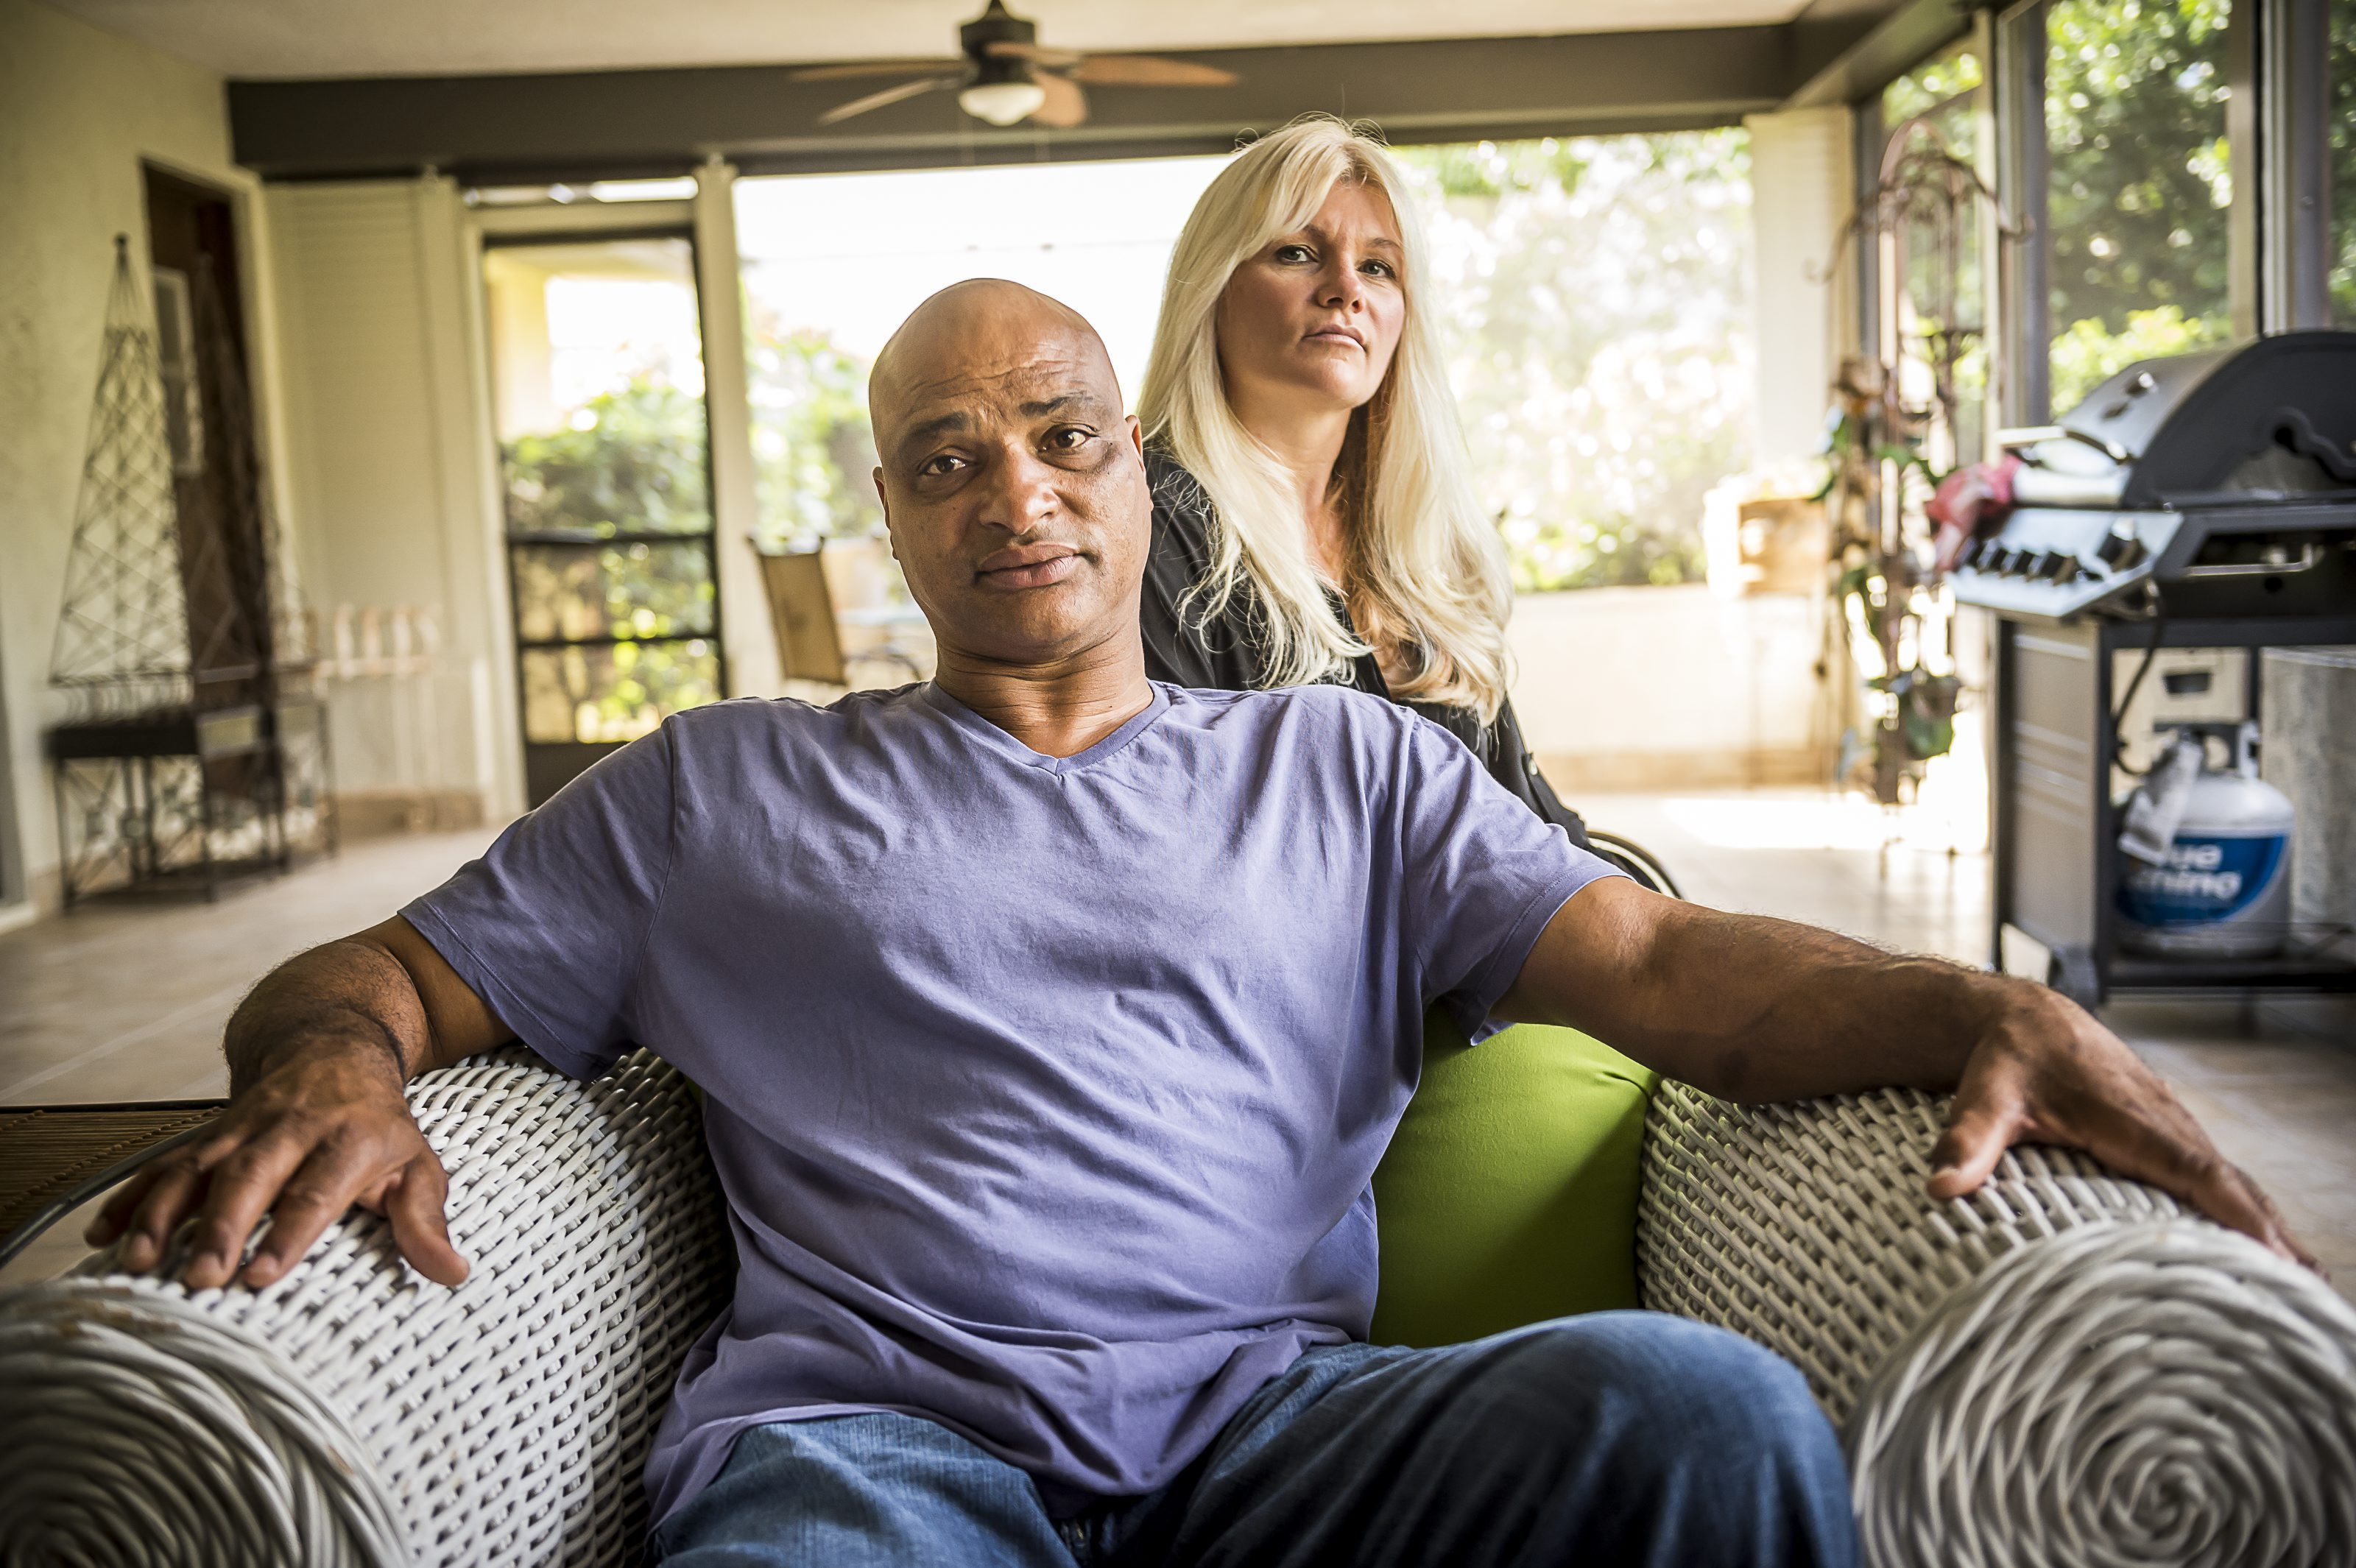 Janine Talley writes about life as an NFL wife to Bills great Darryl Talley in her latest Journal for The News. (Roberto Gonzalez/Special to The News)